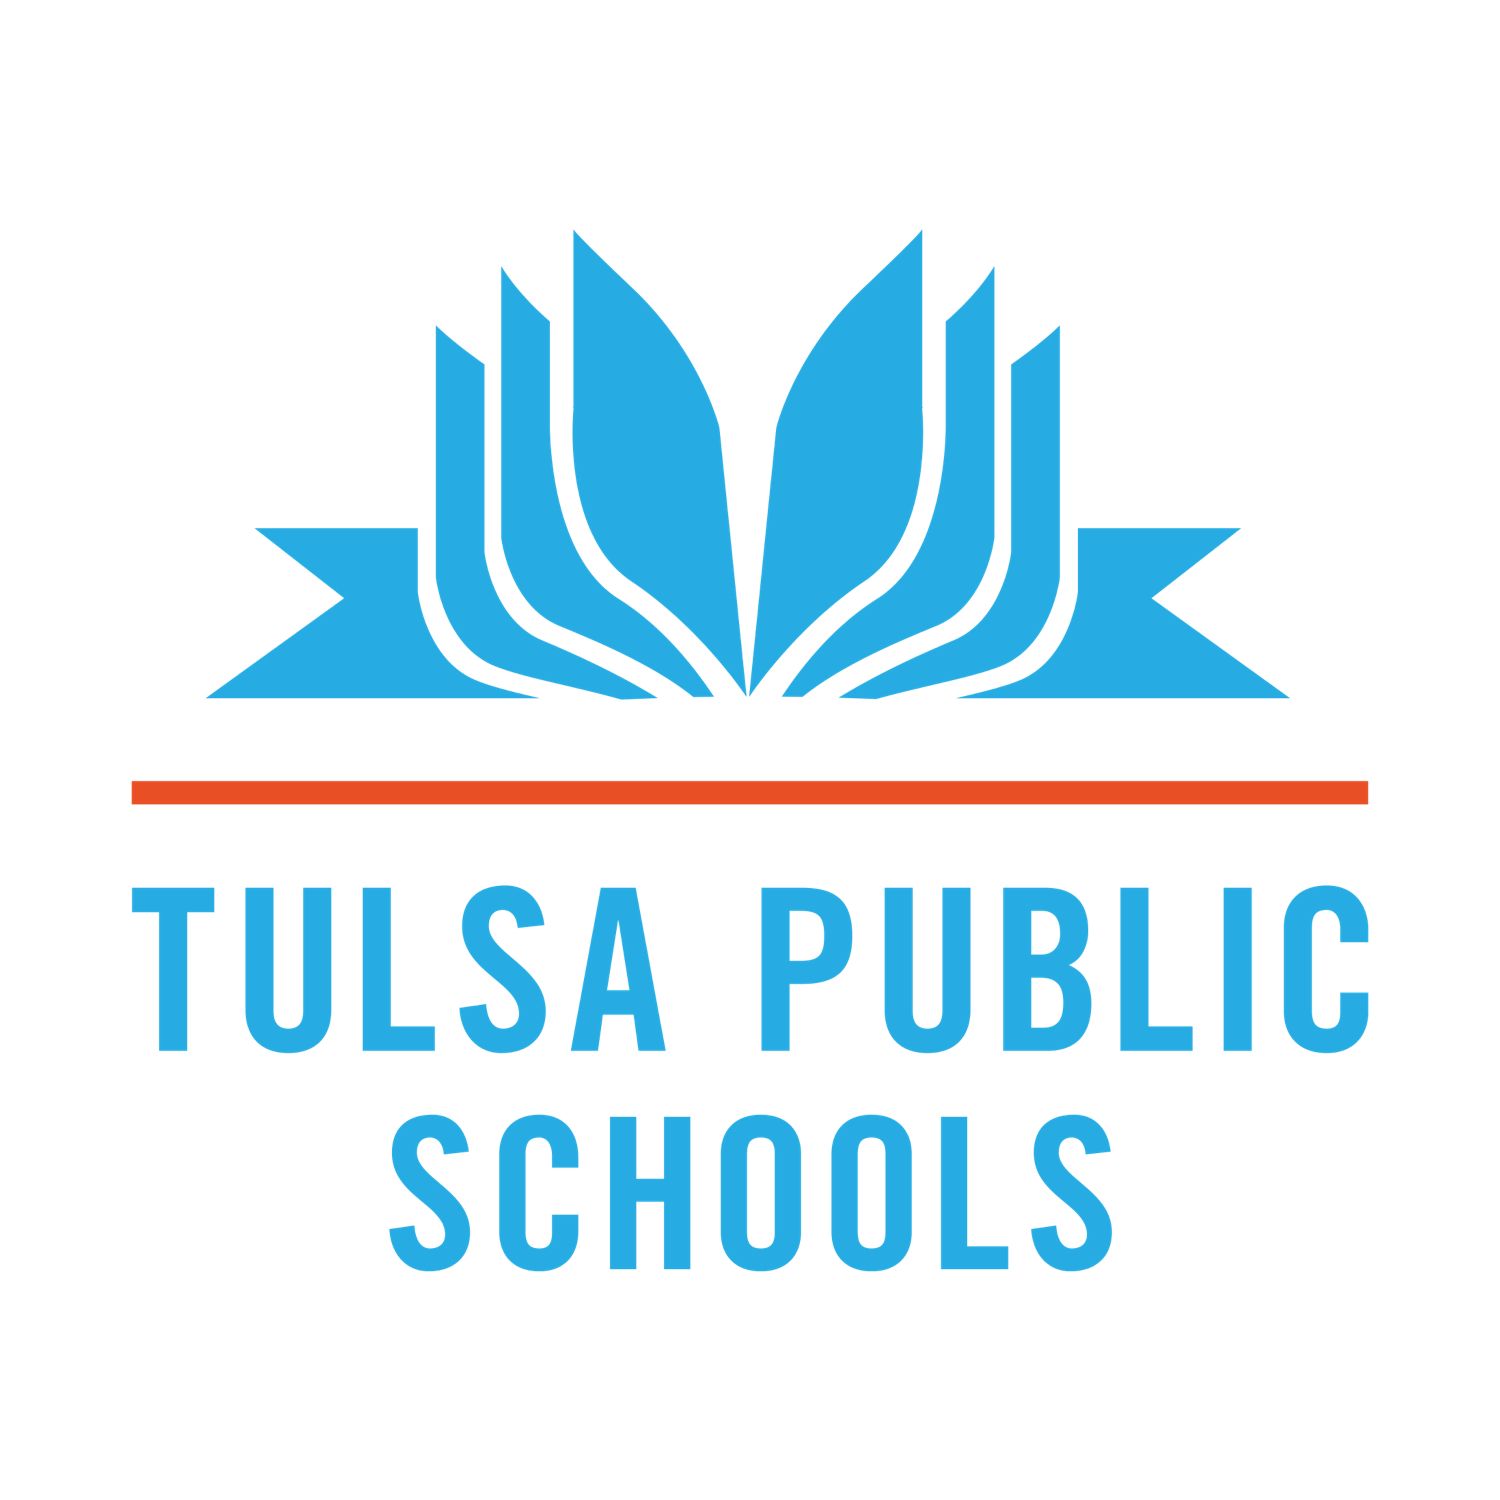 Tulsa Public Schools   Tulsa Public Schools is the destination for extraordinary educators who work with our community and families to ignite the joy of learning and prepare every student for the greatest success in college, careers and life. Our mission is to inspire and prepare every student to love learning, achieve ambitious goals and make positive contributions to our world.